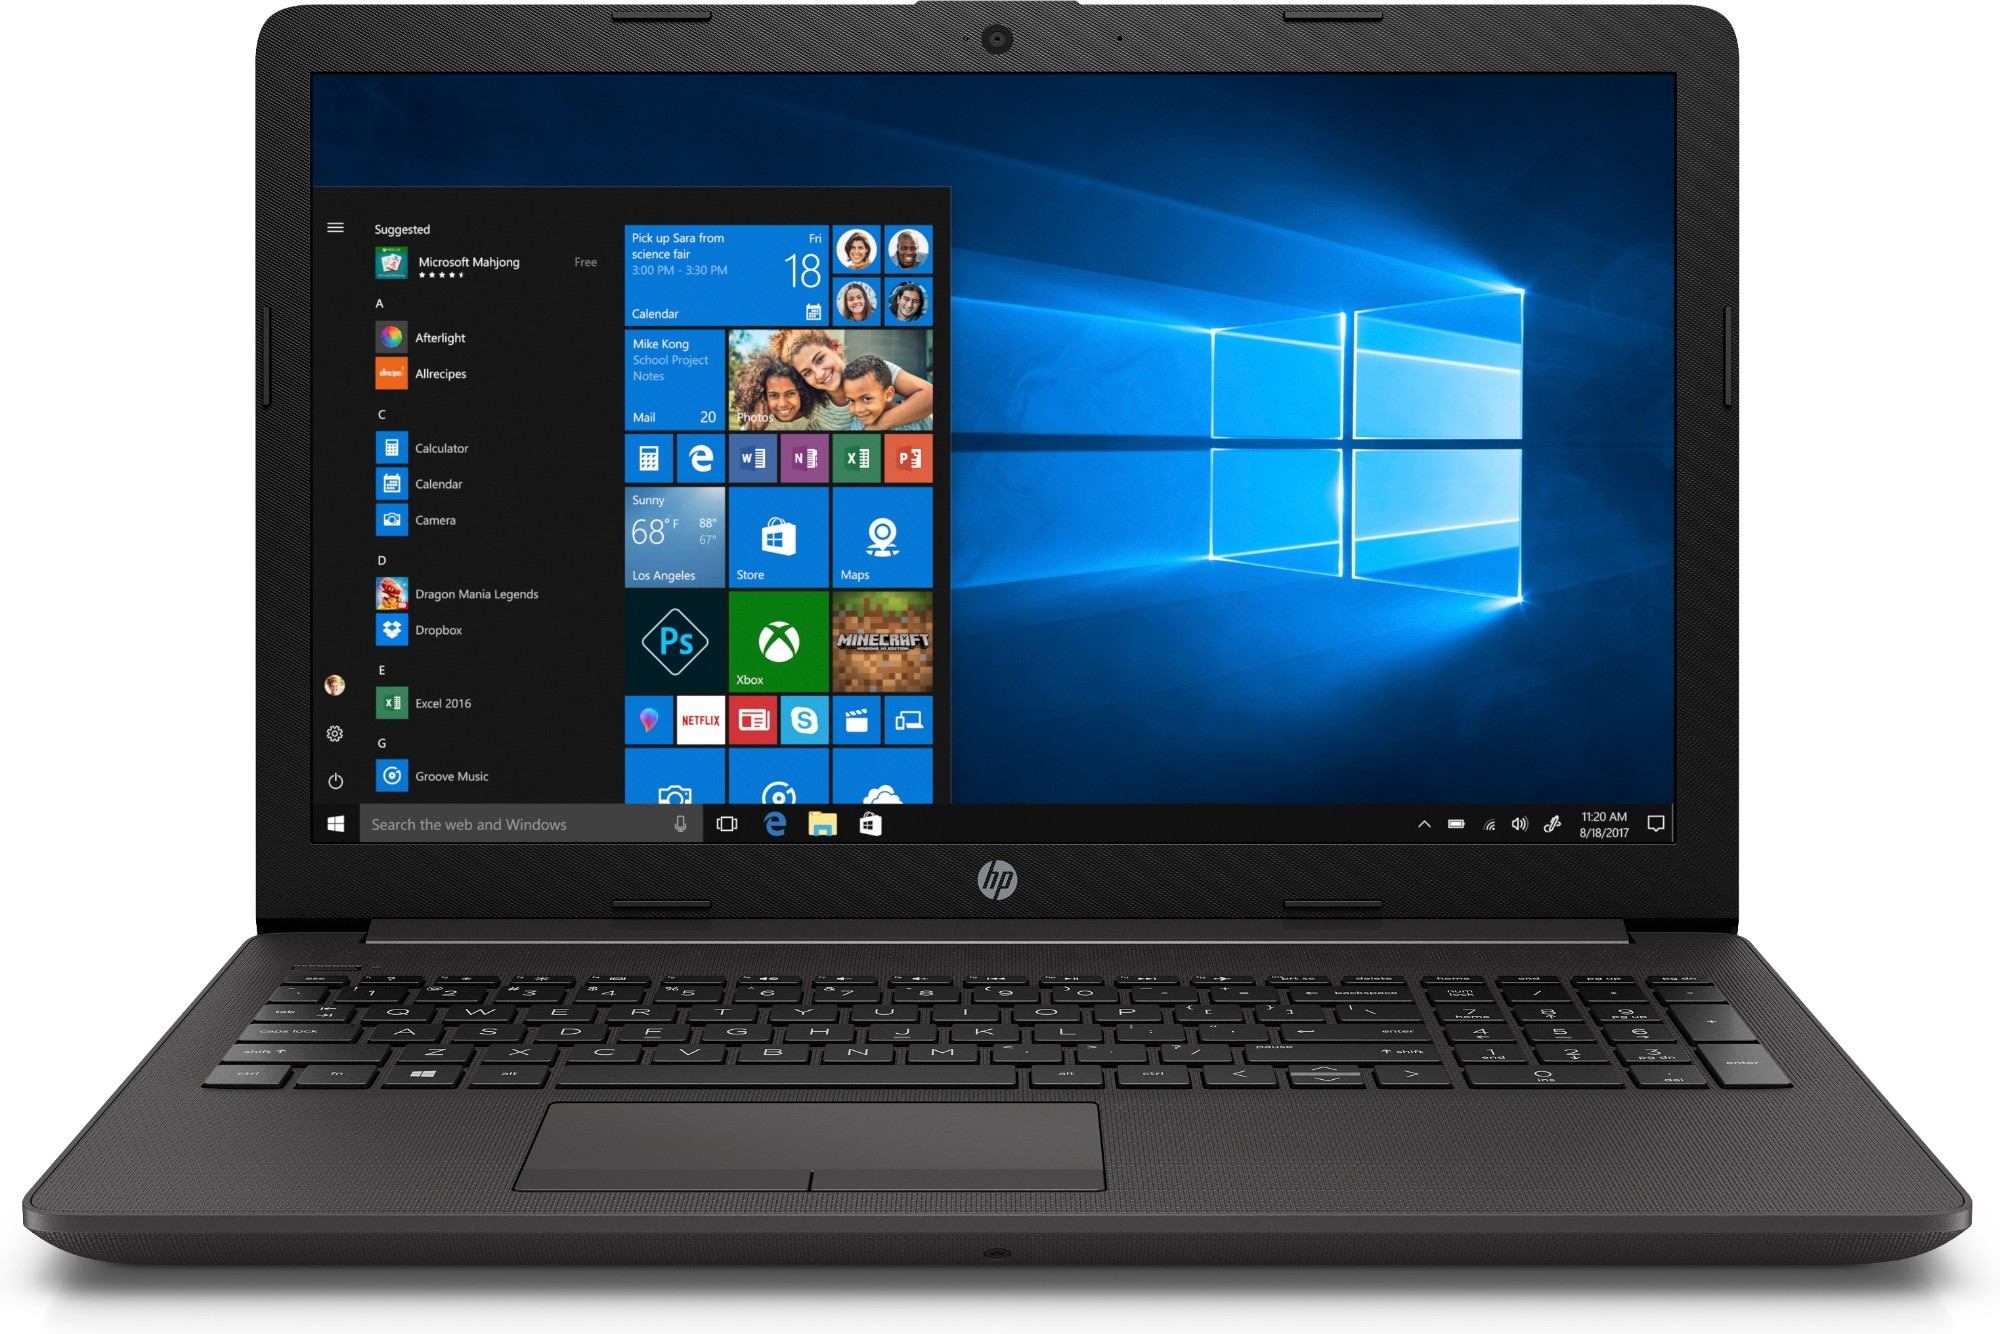 "HP 255 G7 Notebook Black 39.6 cm (15.6"") 1920 x 1080 pixels AMD Ryzen 3 8 GB DDR4-SDRAM 256 GB SSD Wi-Fi 5 (802.11ac) Windows 10 Home"